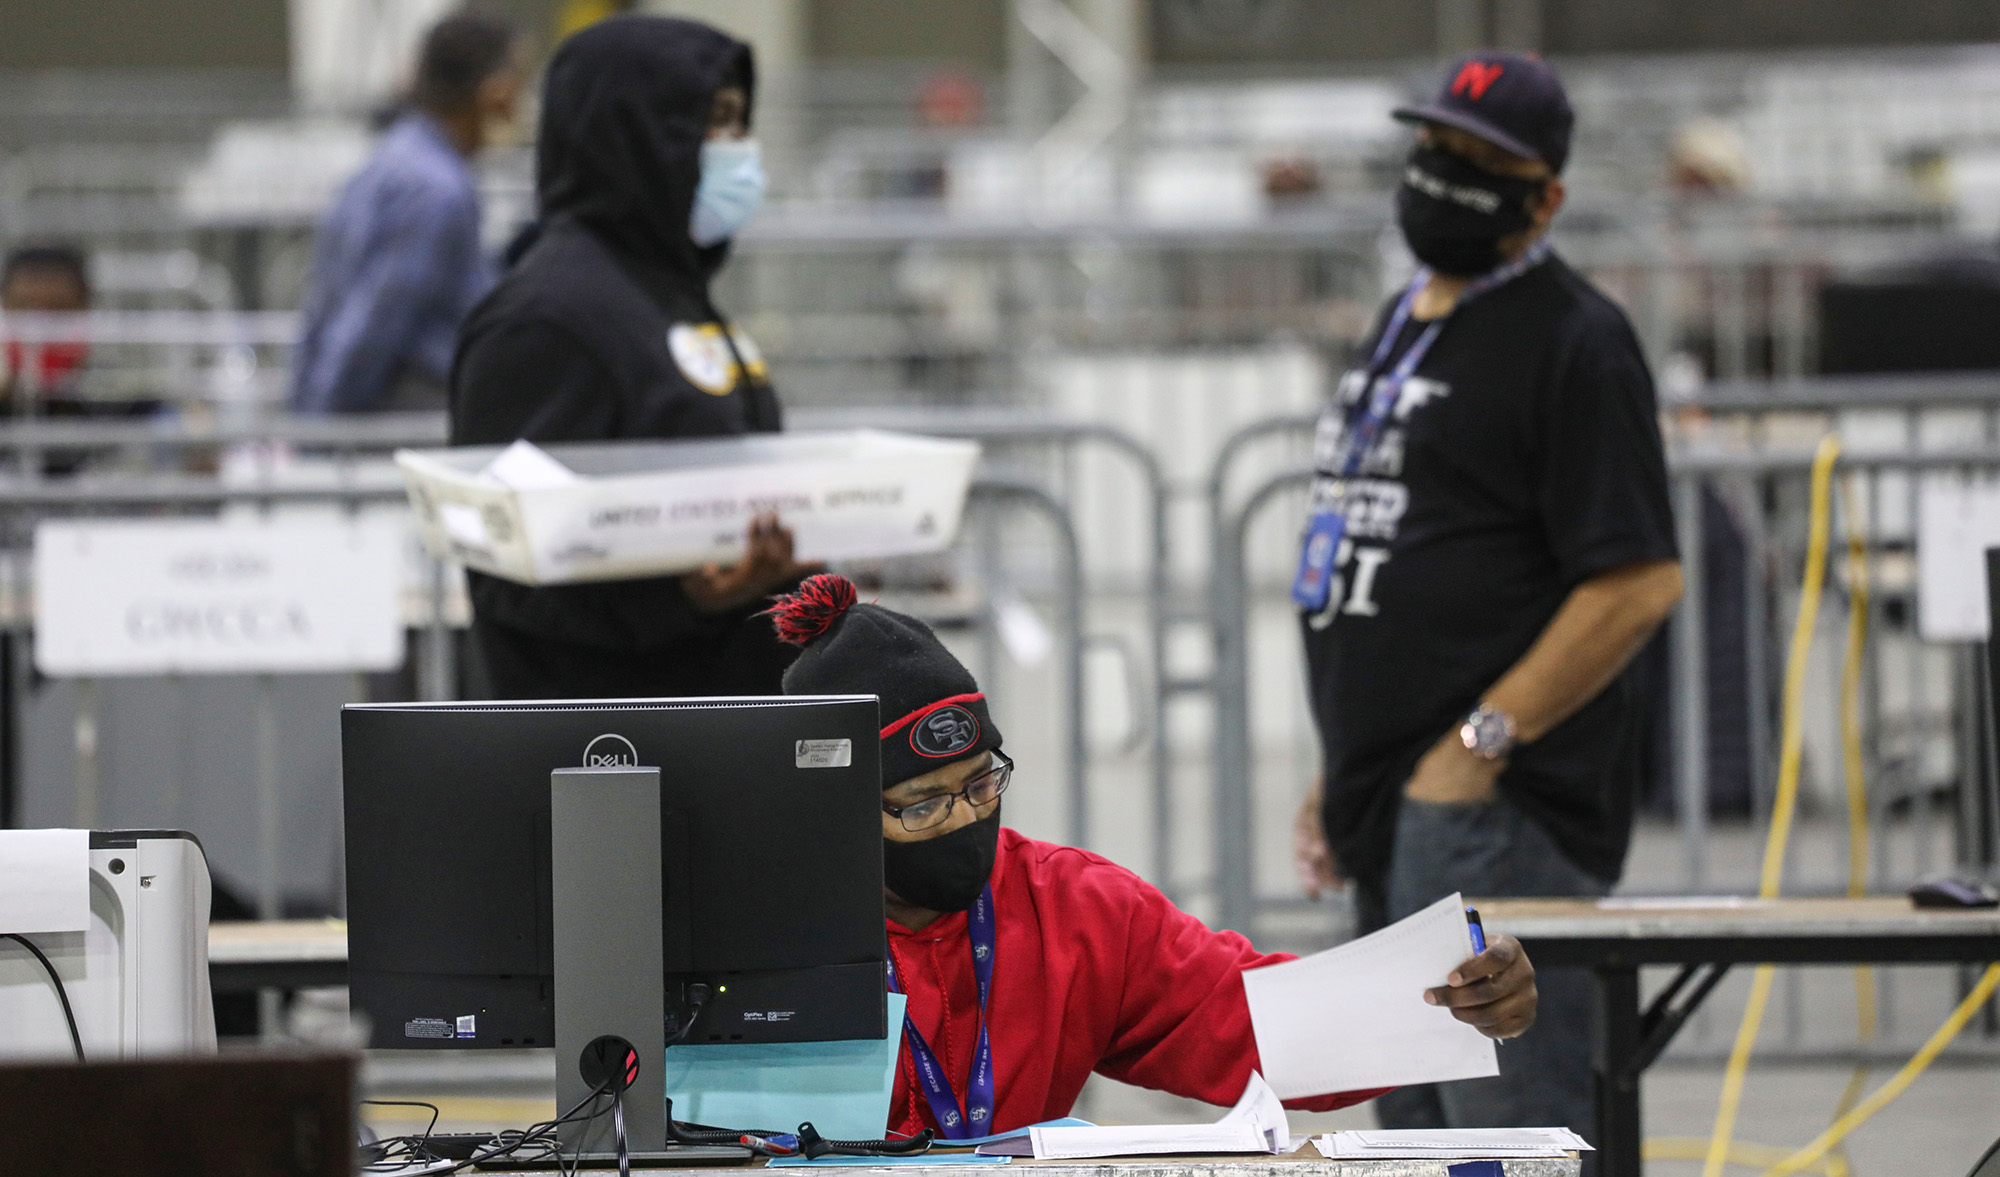 Workers scan ballots at the Georgia World Congress Center in Atlanta, Georgia on January 5, during the Georgia Senate runoff elections.